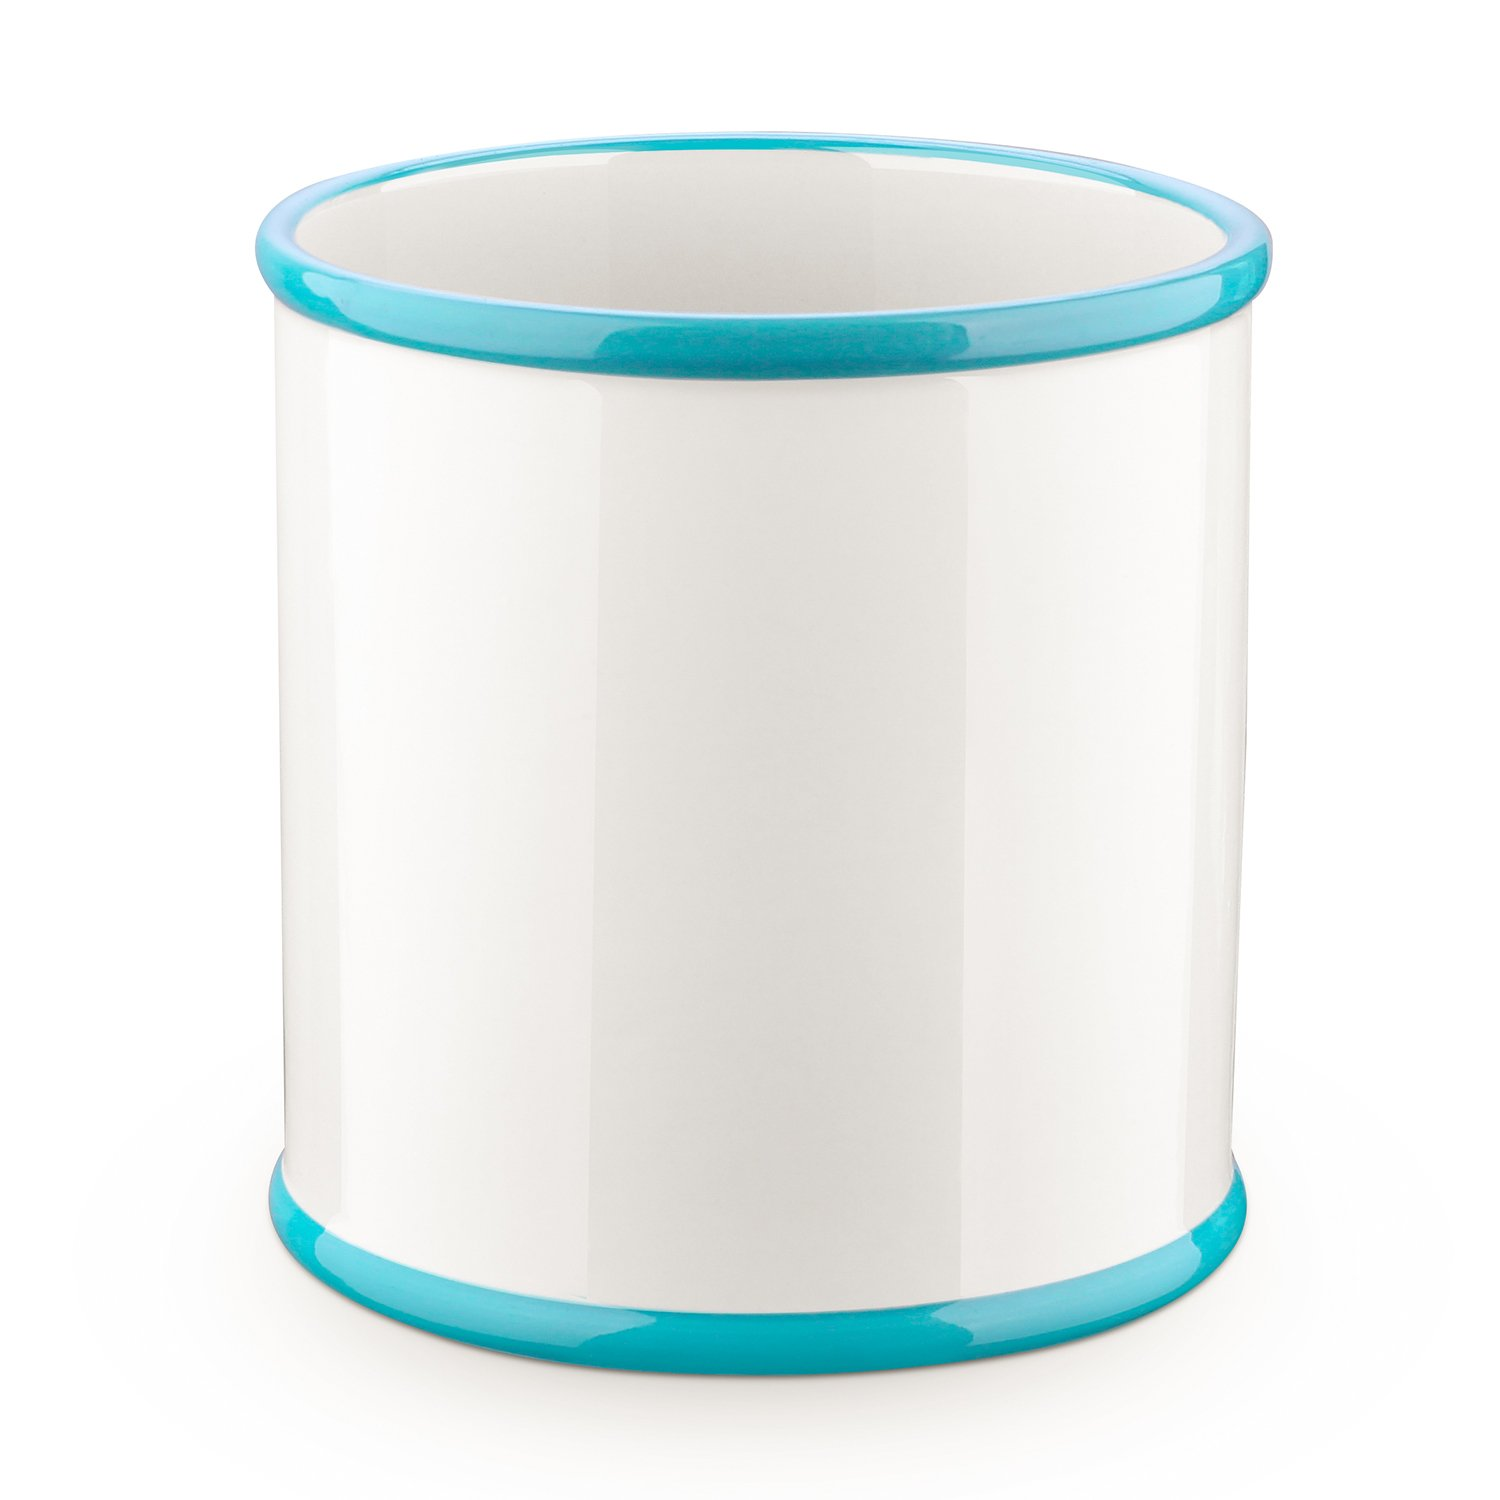 DOWAN Ceramic Utensil Crock, Utensil Holder For Kitchen, 6.5'' x 7'', Aqua Blue & White